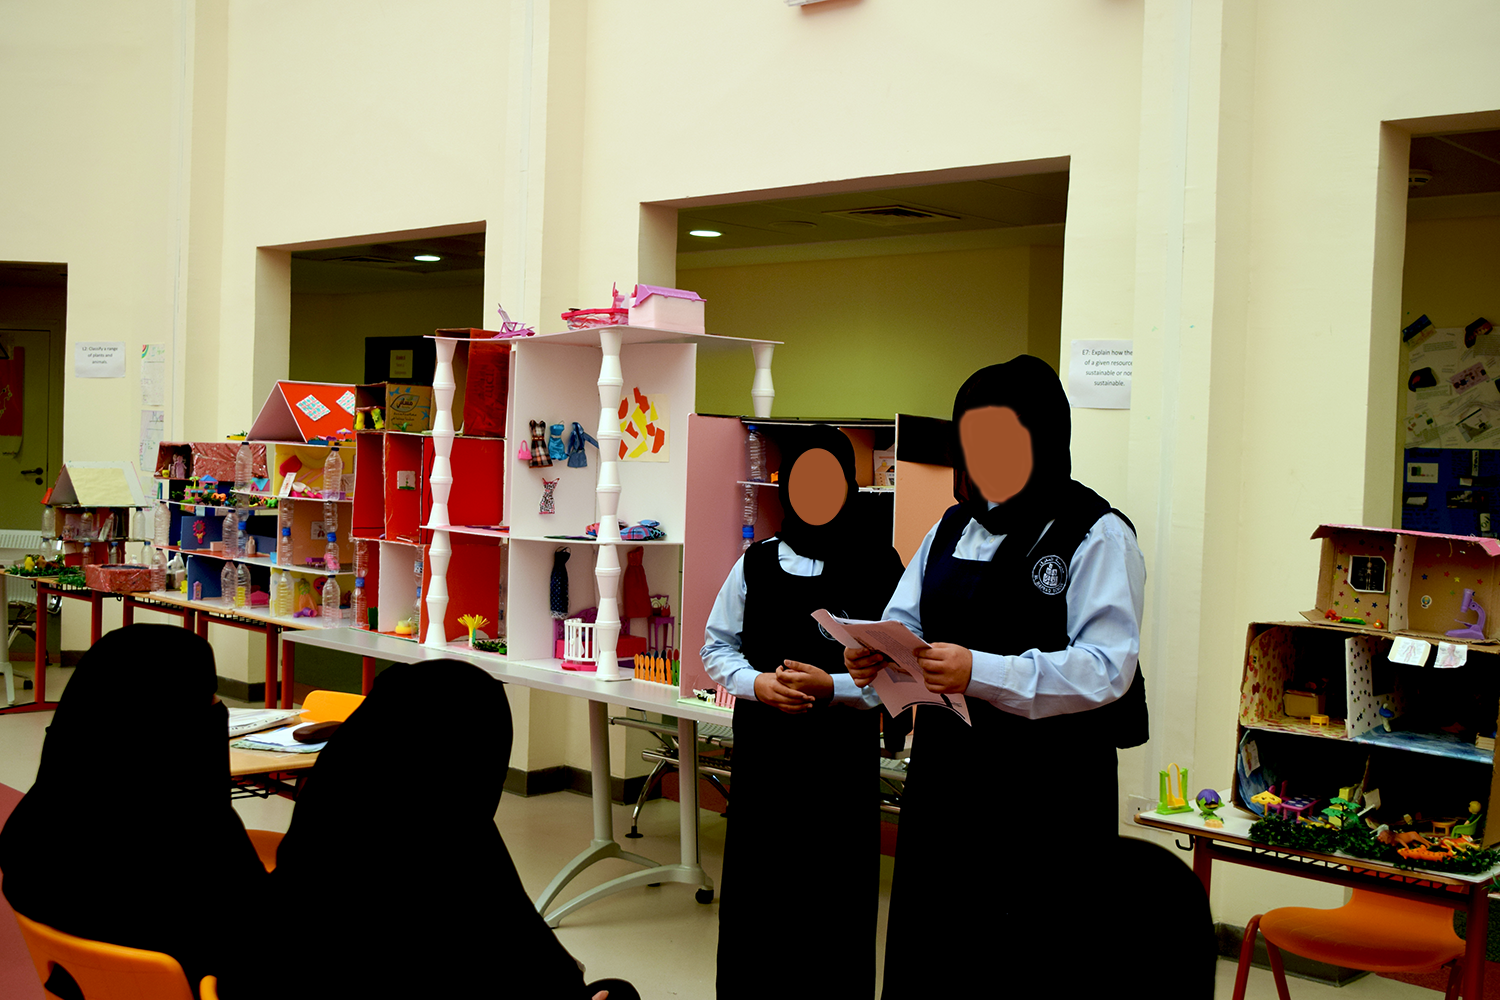 Presentation on sustainability by grade 6 students at a school in Abu Dhabi